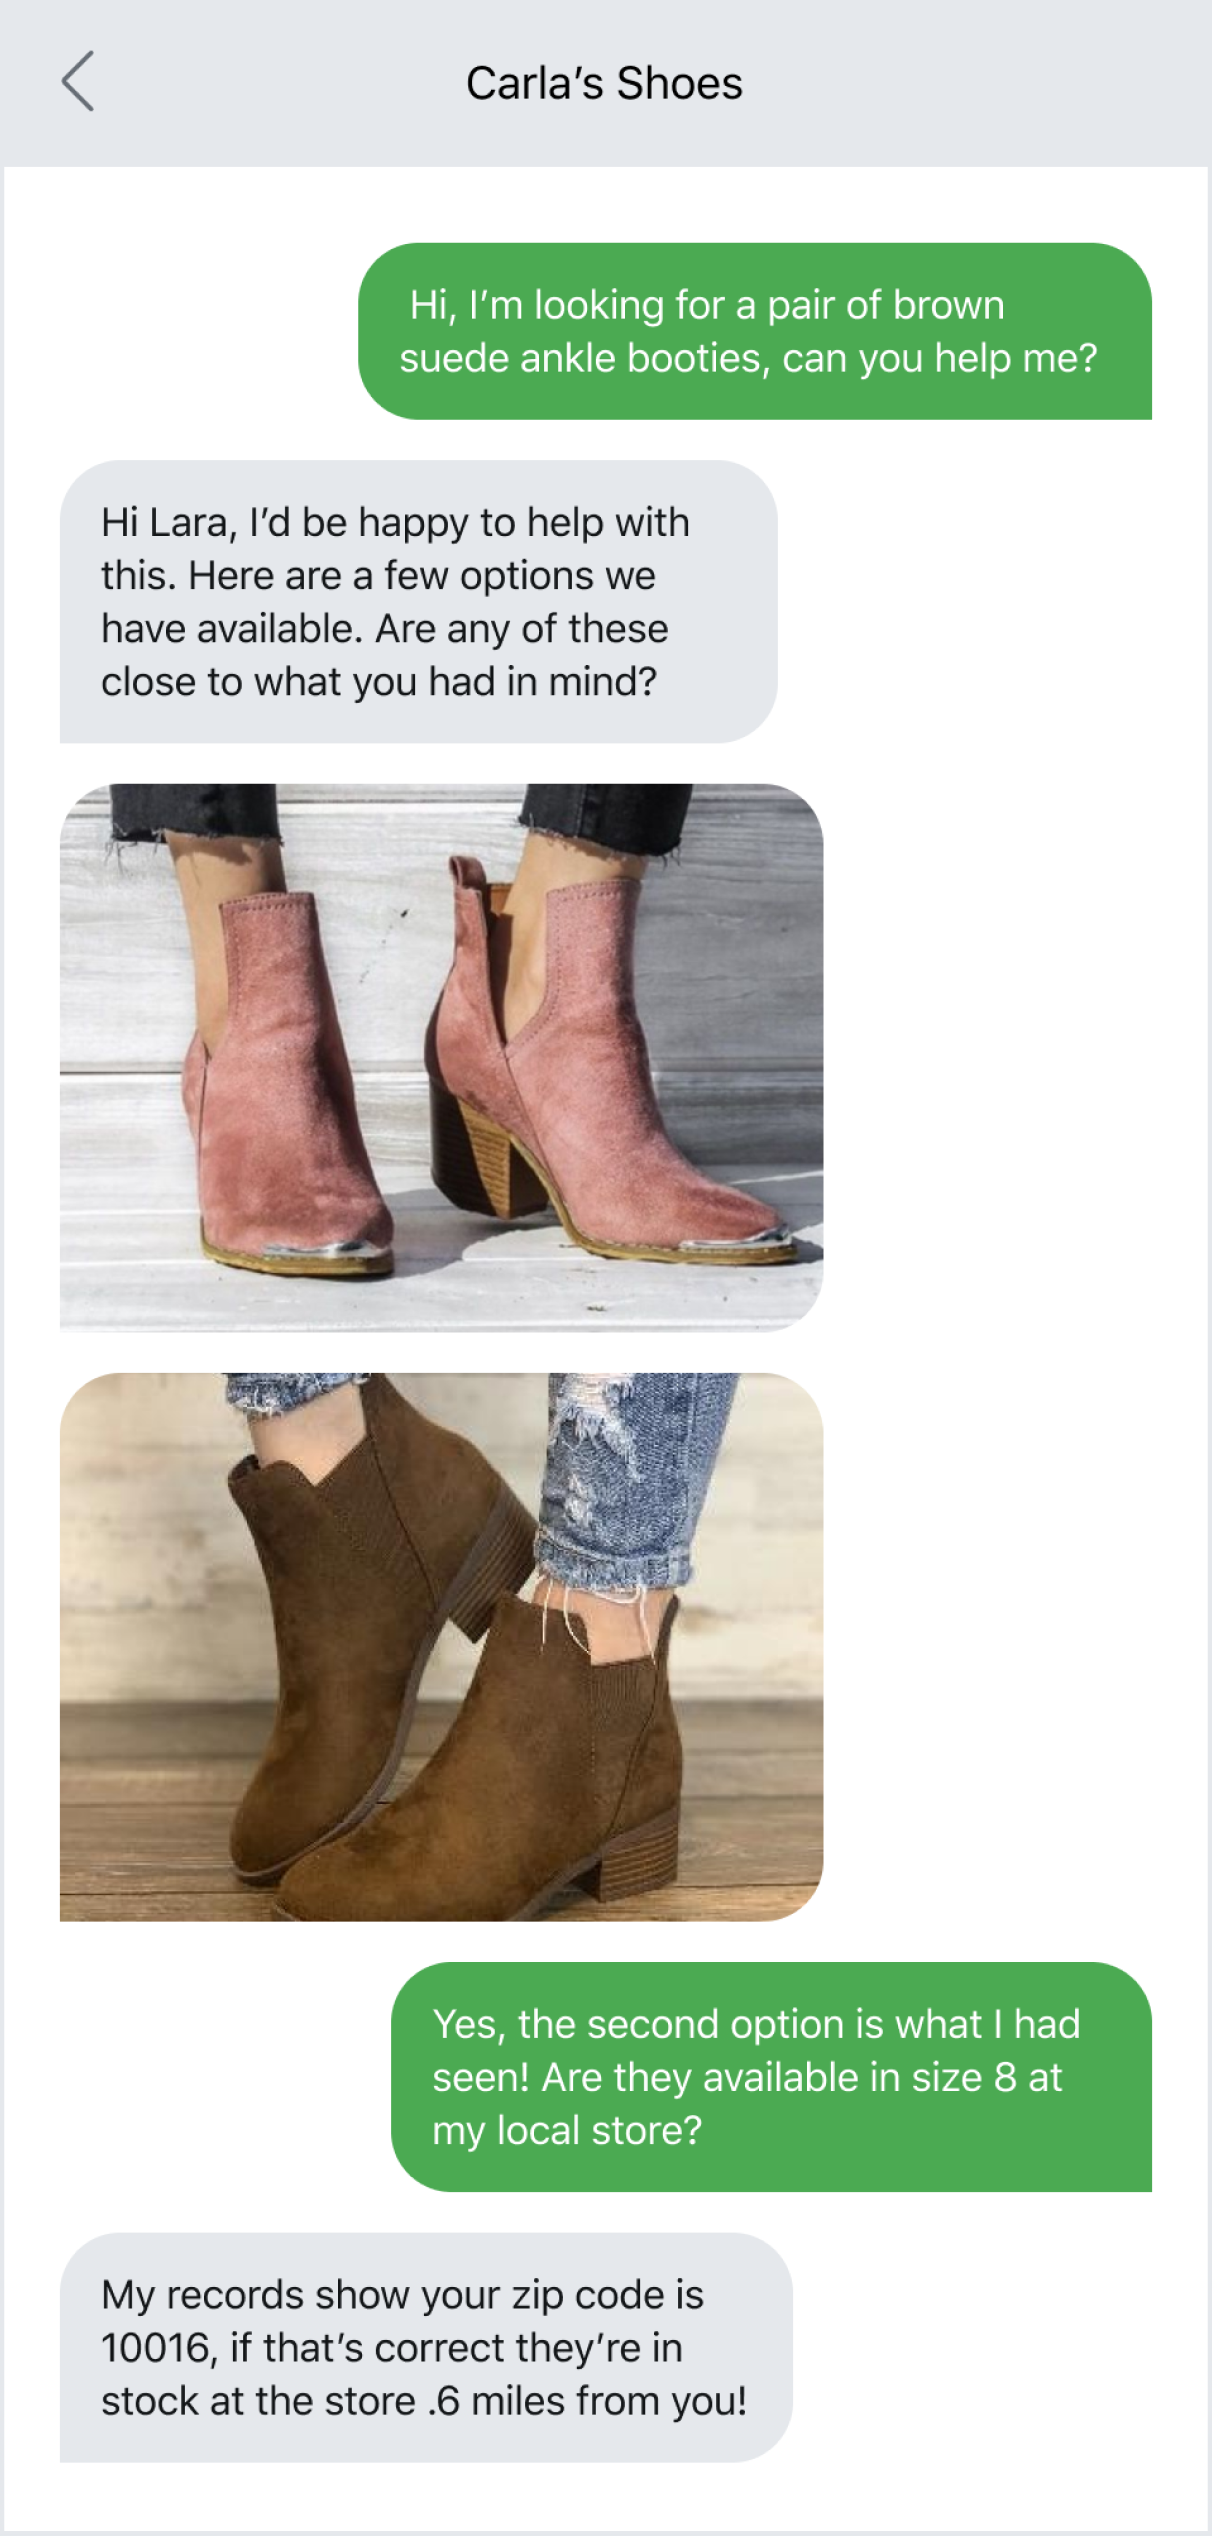 Product photos in MMS conversation